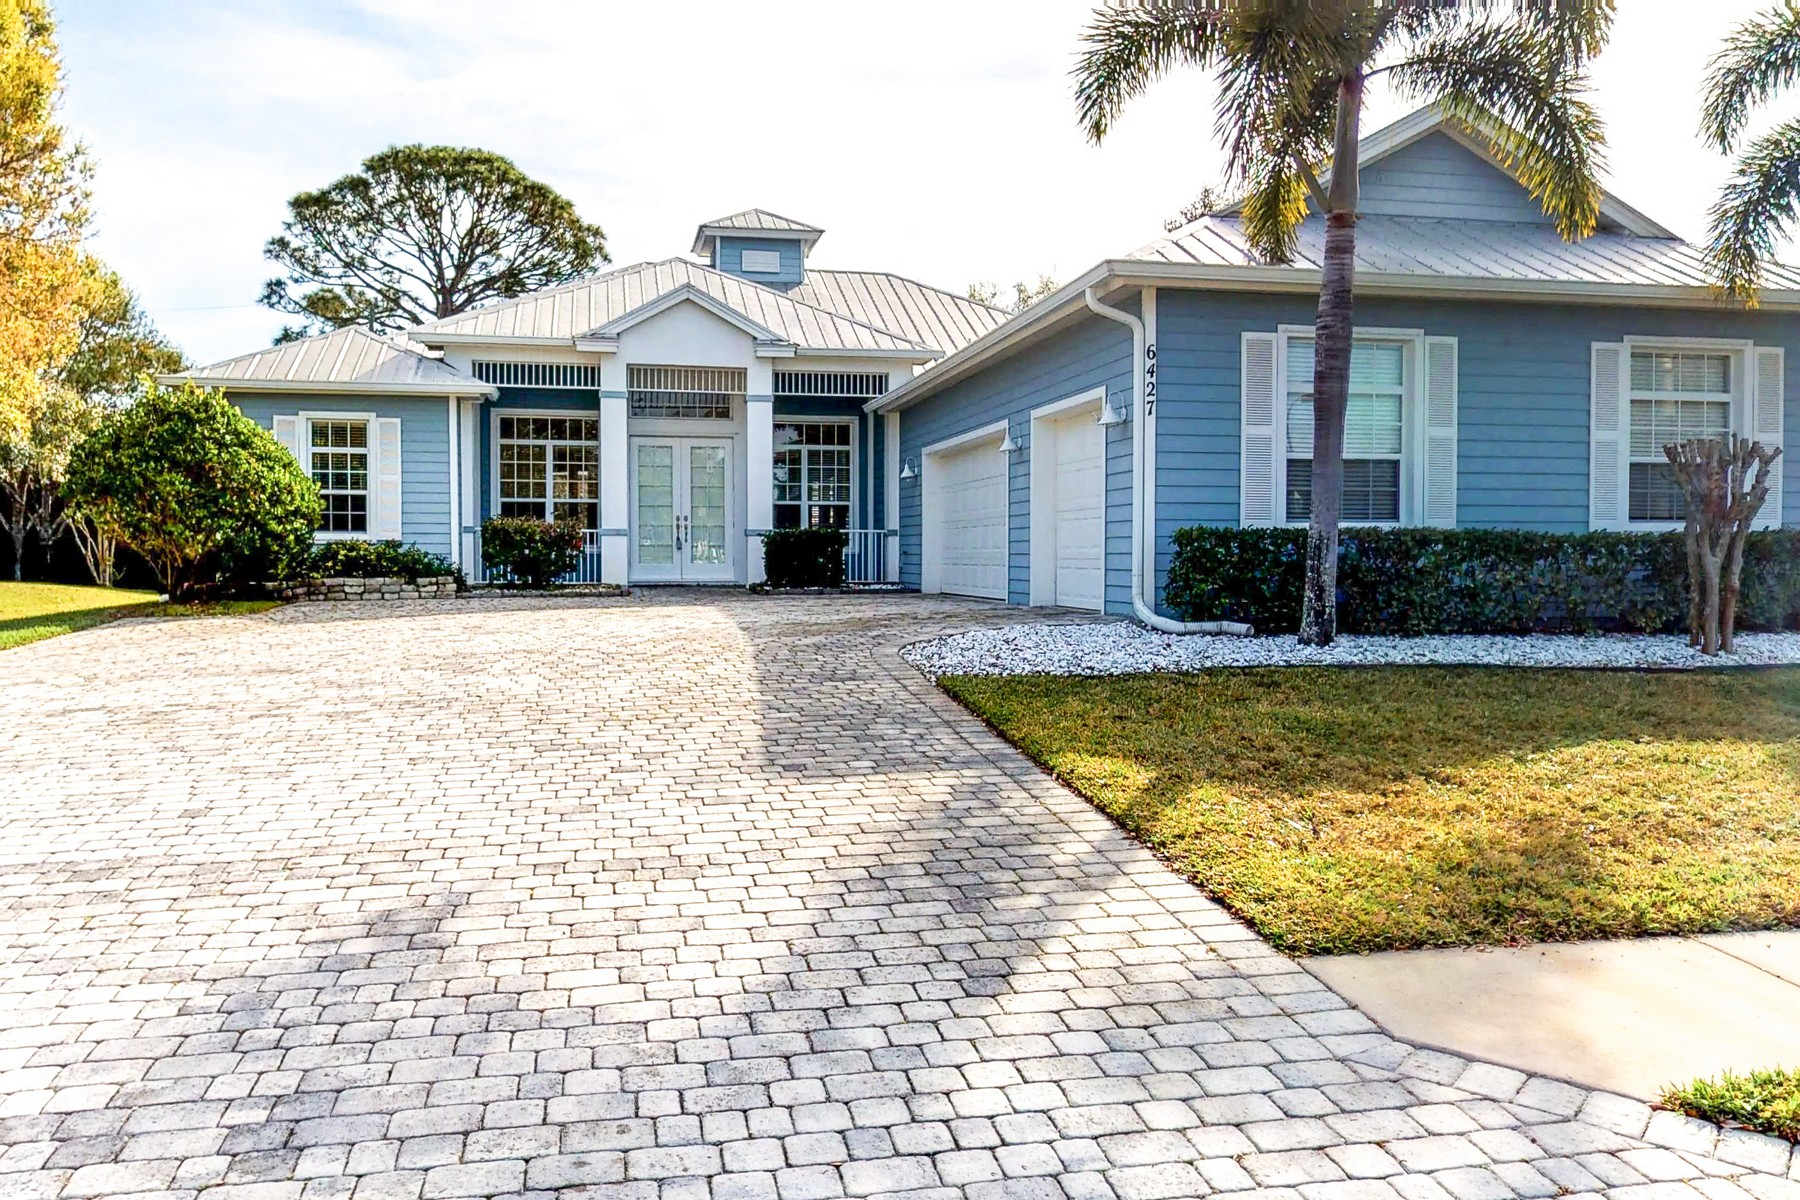 Property for Sale at All the Bells and Whistles, And A Pool Plus a Three Car Garage! 6427 53rd Circle Vero Beach, Florida 32967 United States